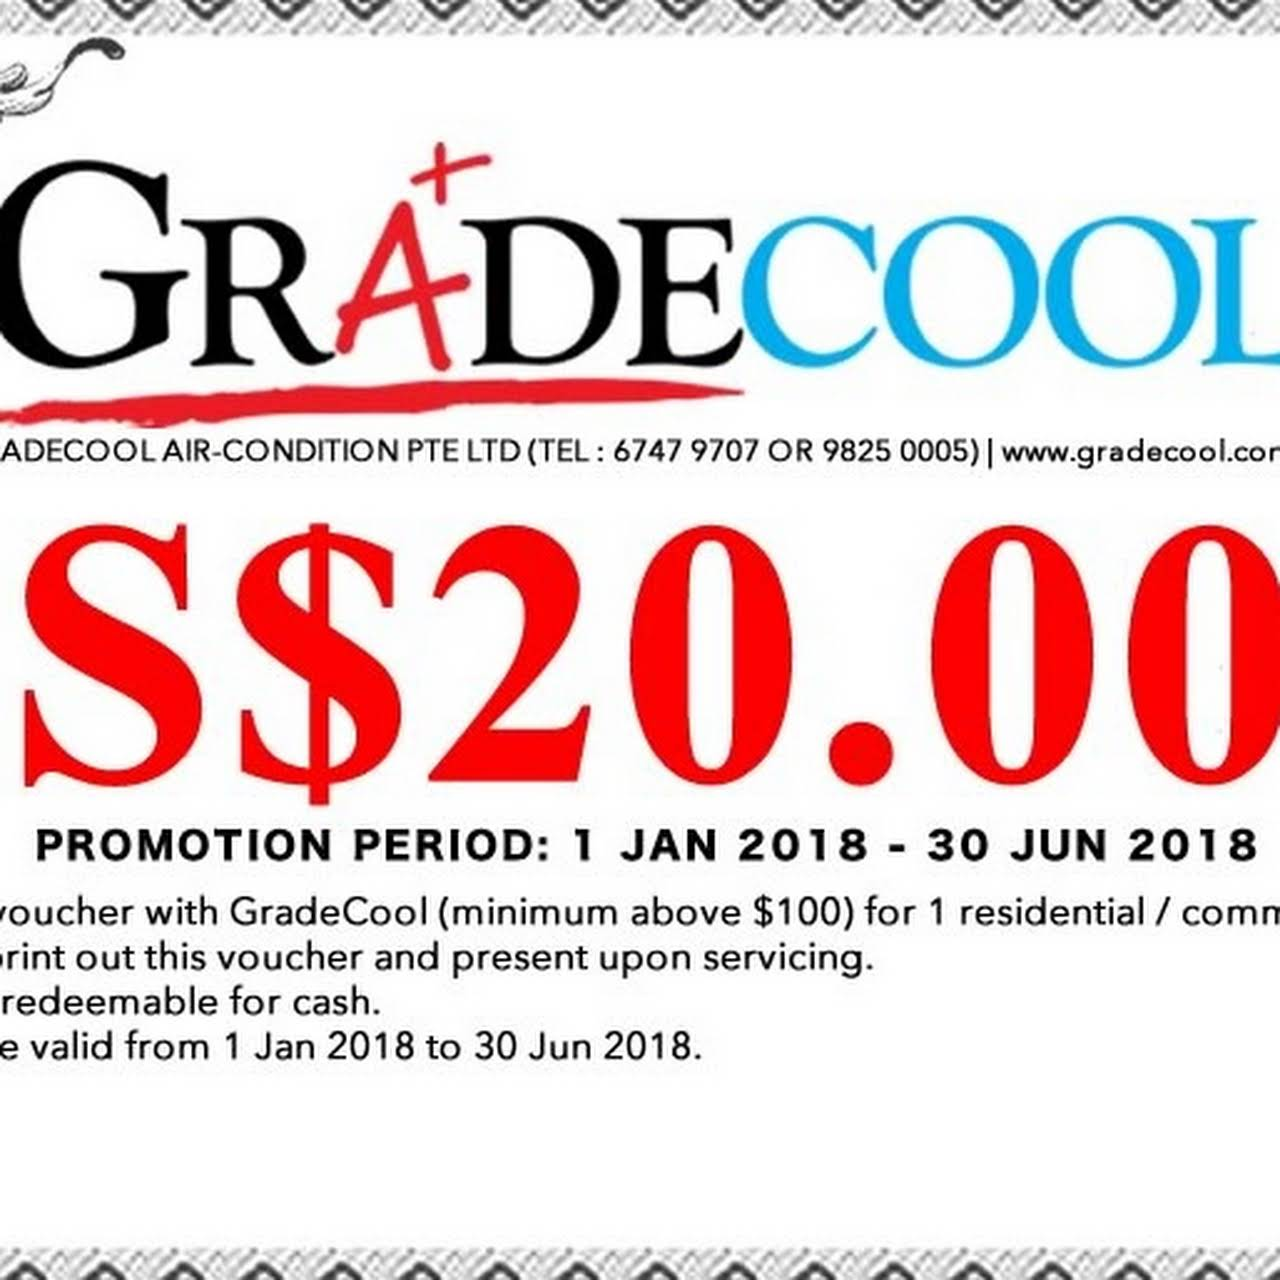 GRADECOOL AIR-CONDITION PTE LTD - Air Conditioning Contractor